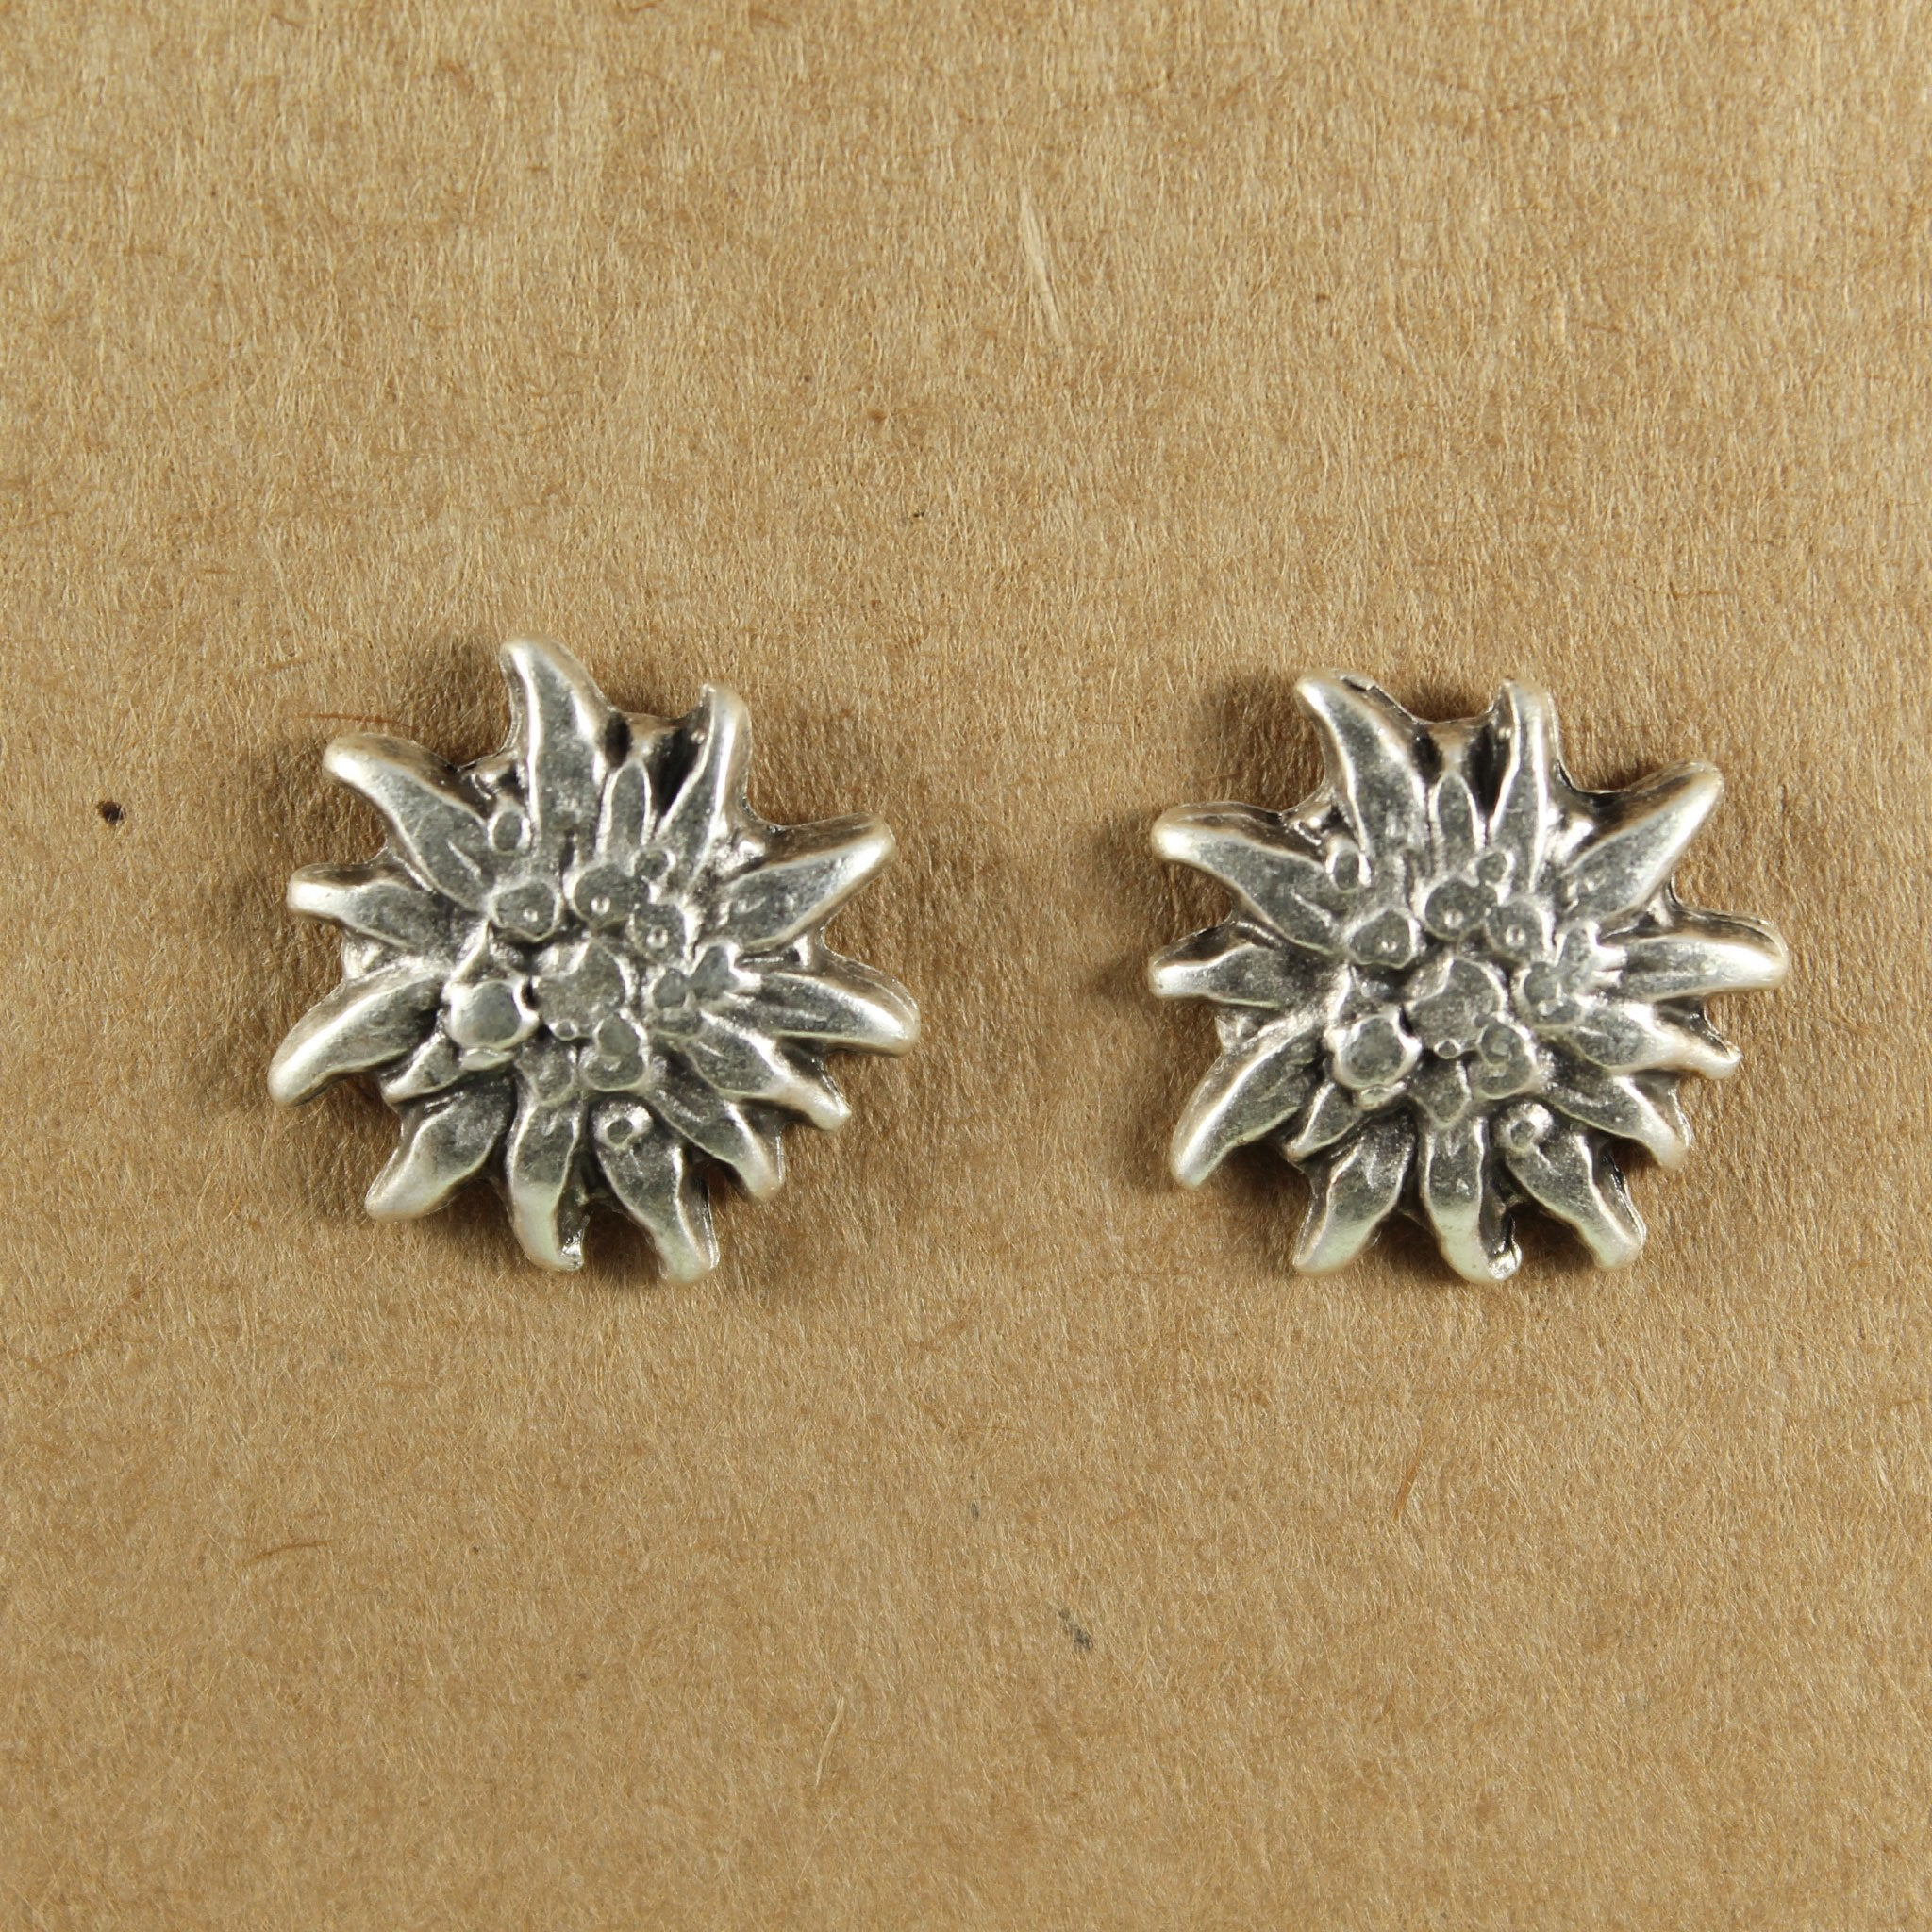 Silver plated sunflower stud earrings | Earrings - The Naughty Shrew